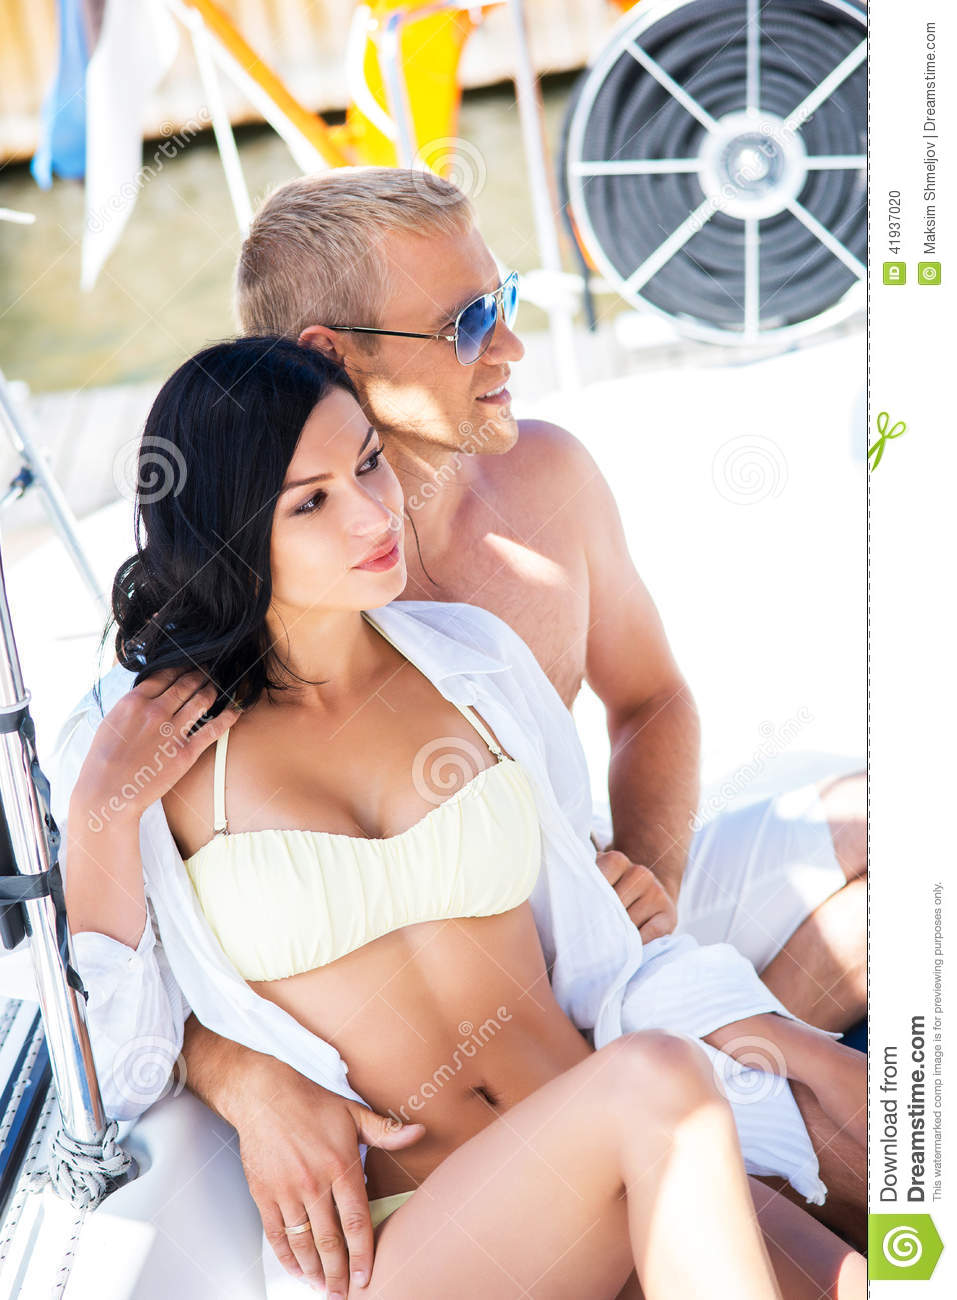 a02c7ed3c3 Handsome and rich men and a beautiful and women in swimsuit relaxing on a sailing  boat.